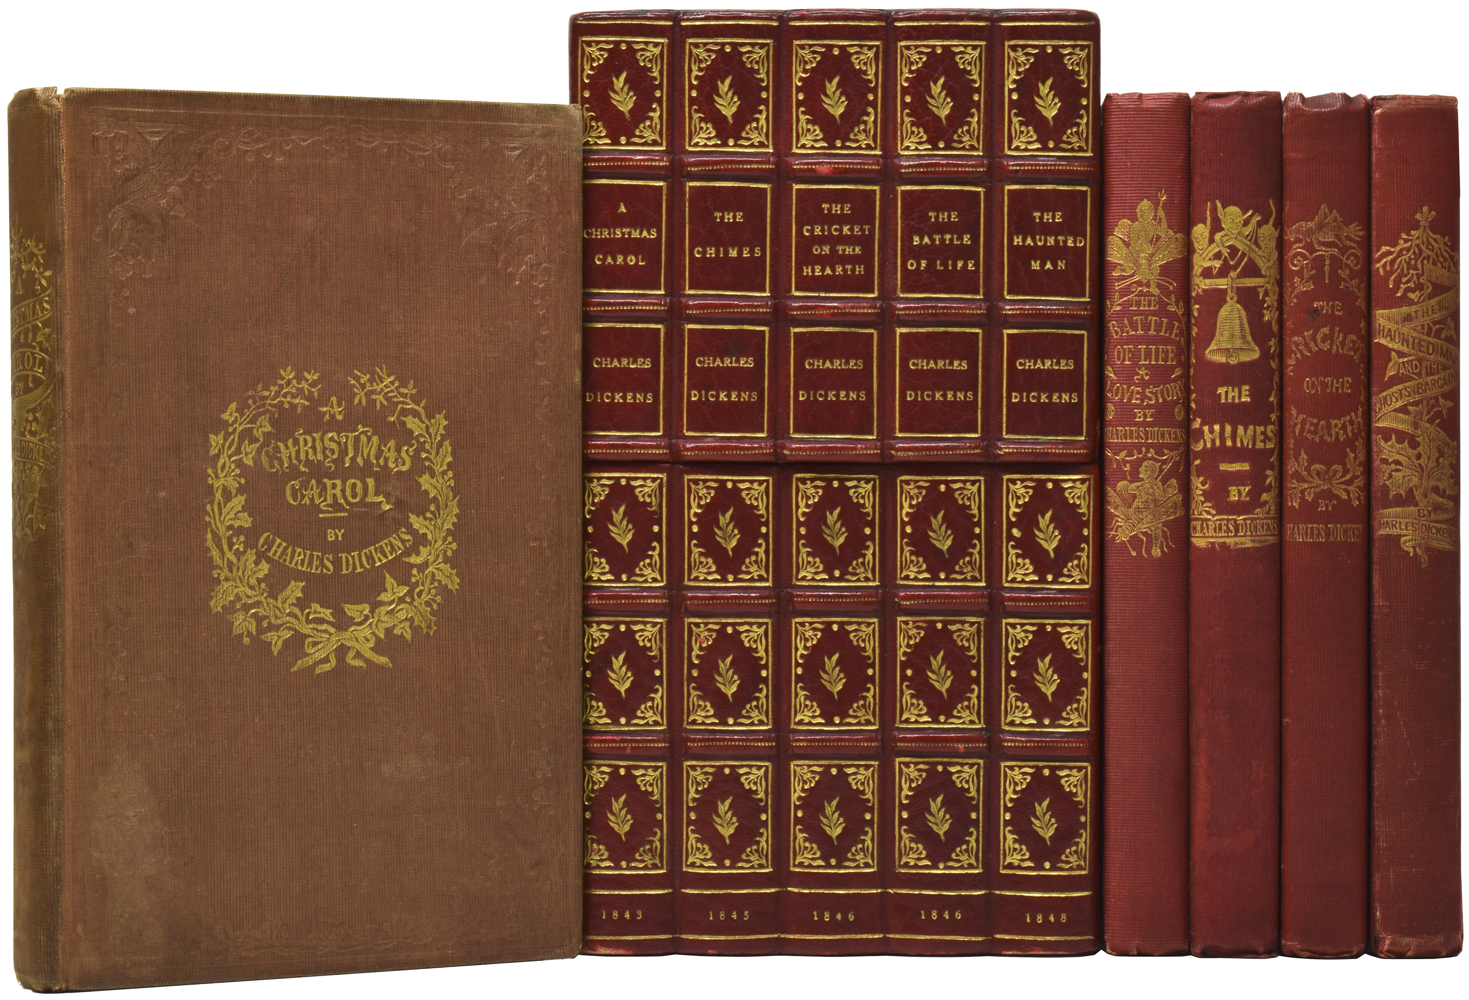 Charles Dickens A Christmas Carol First Edition Seller Supplied Images Abebooks